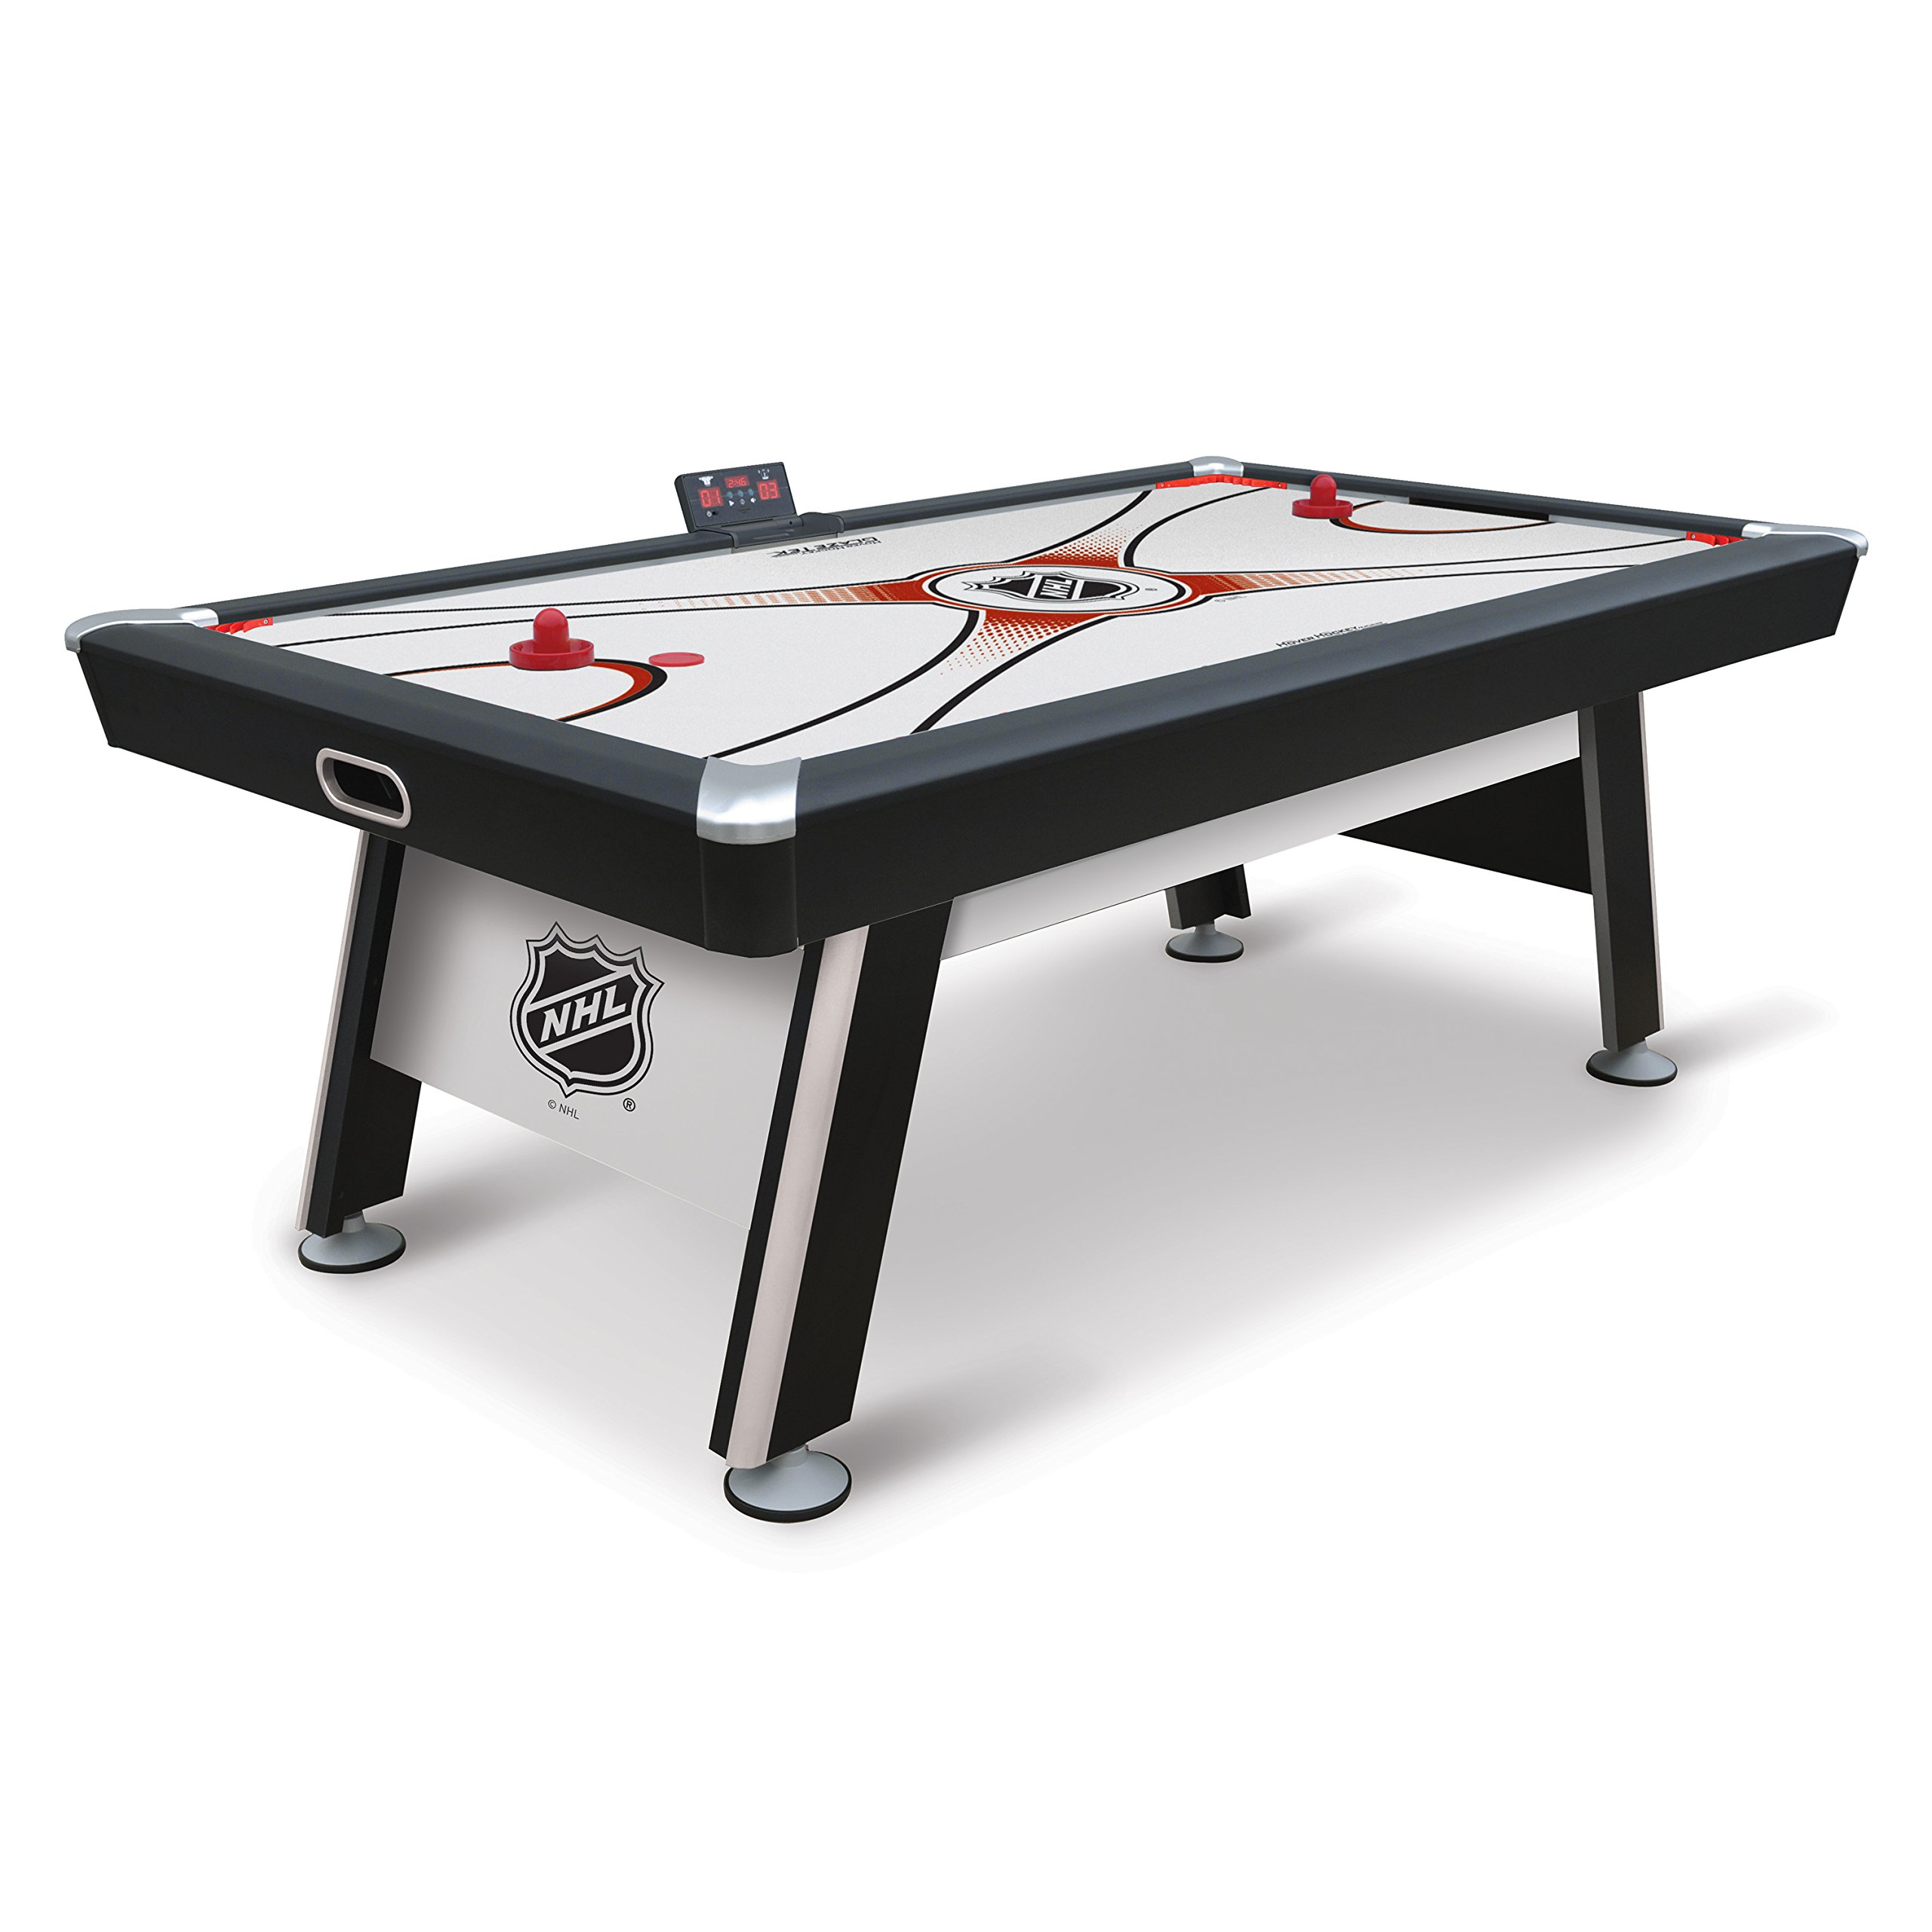 NHL Sting Ray Air Powered Hockey Table - 84 Inch - Features Scratch Resistant Material, Automatic Scoring, and Complete with All Accessories by EastPoint Sports